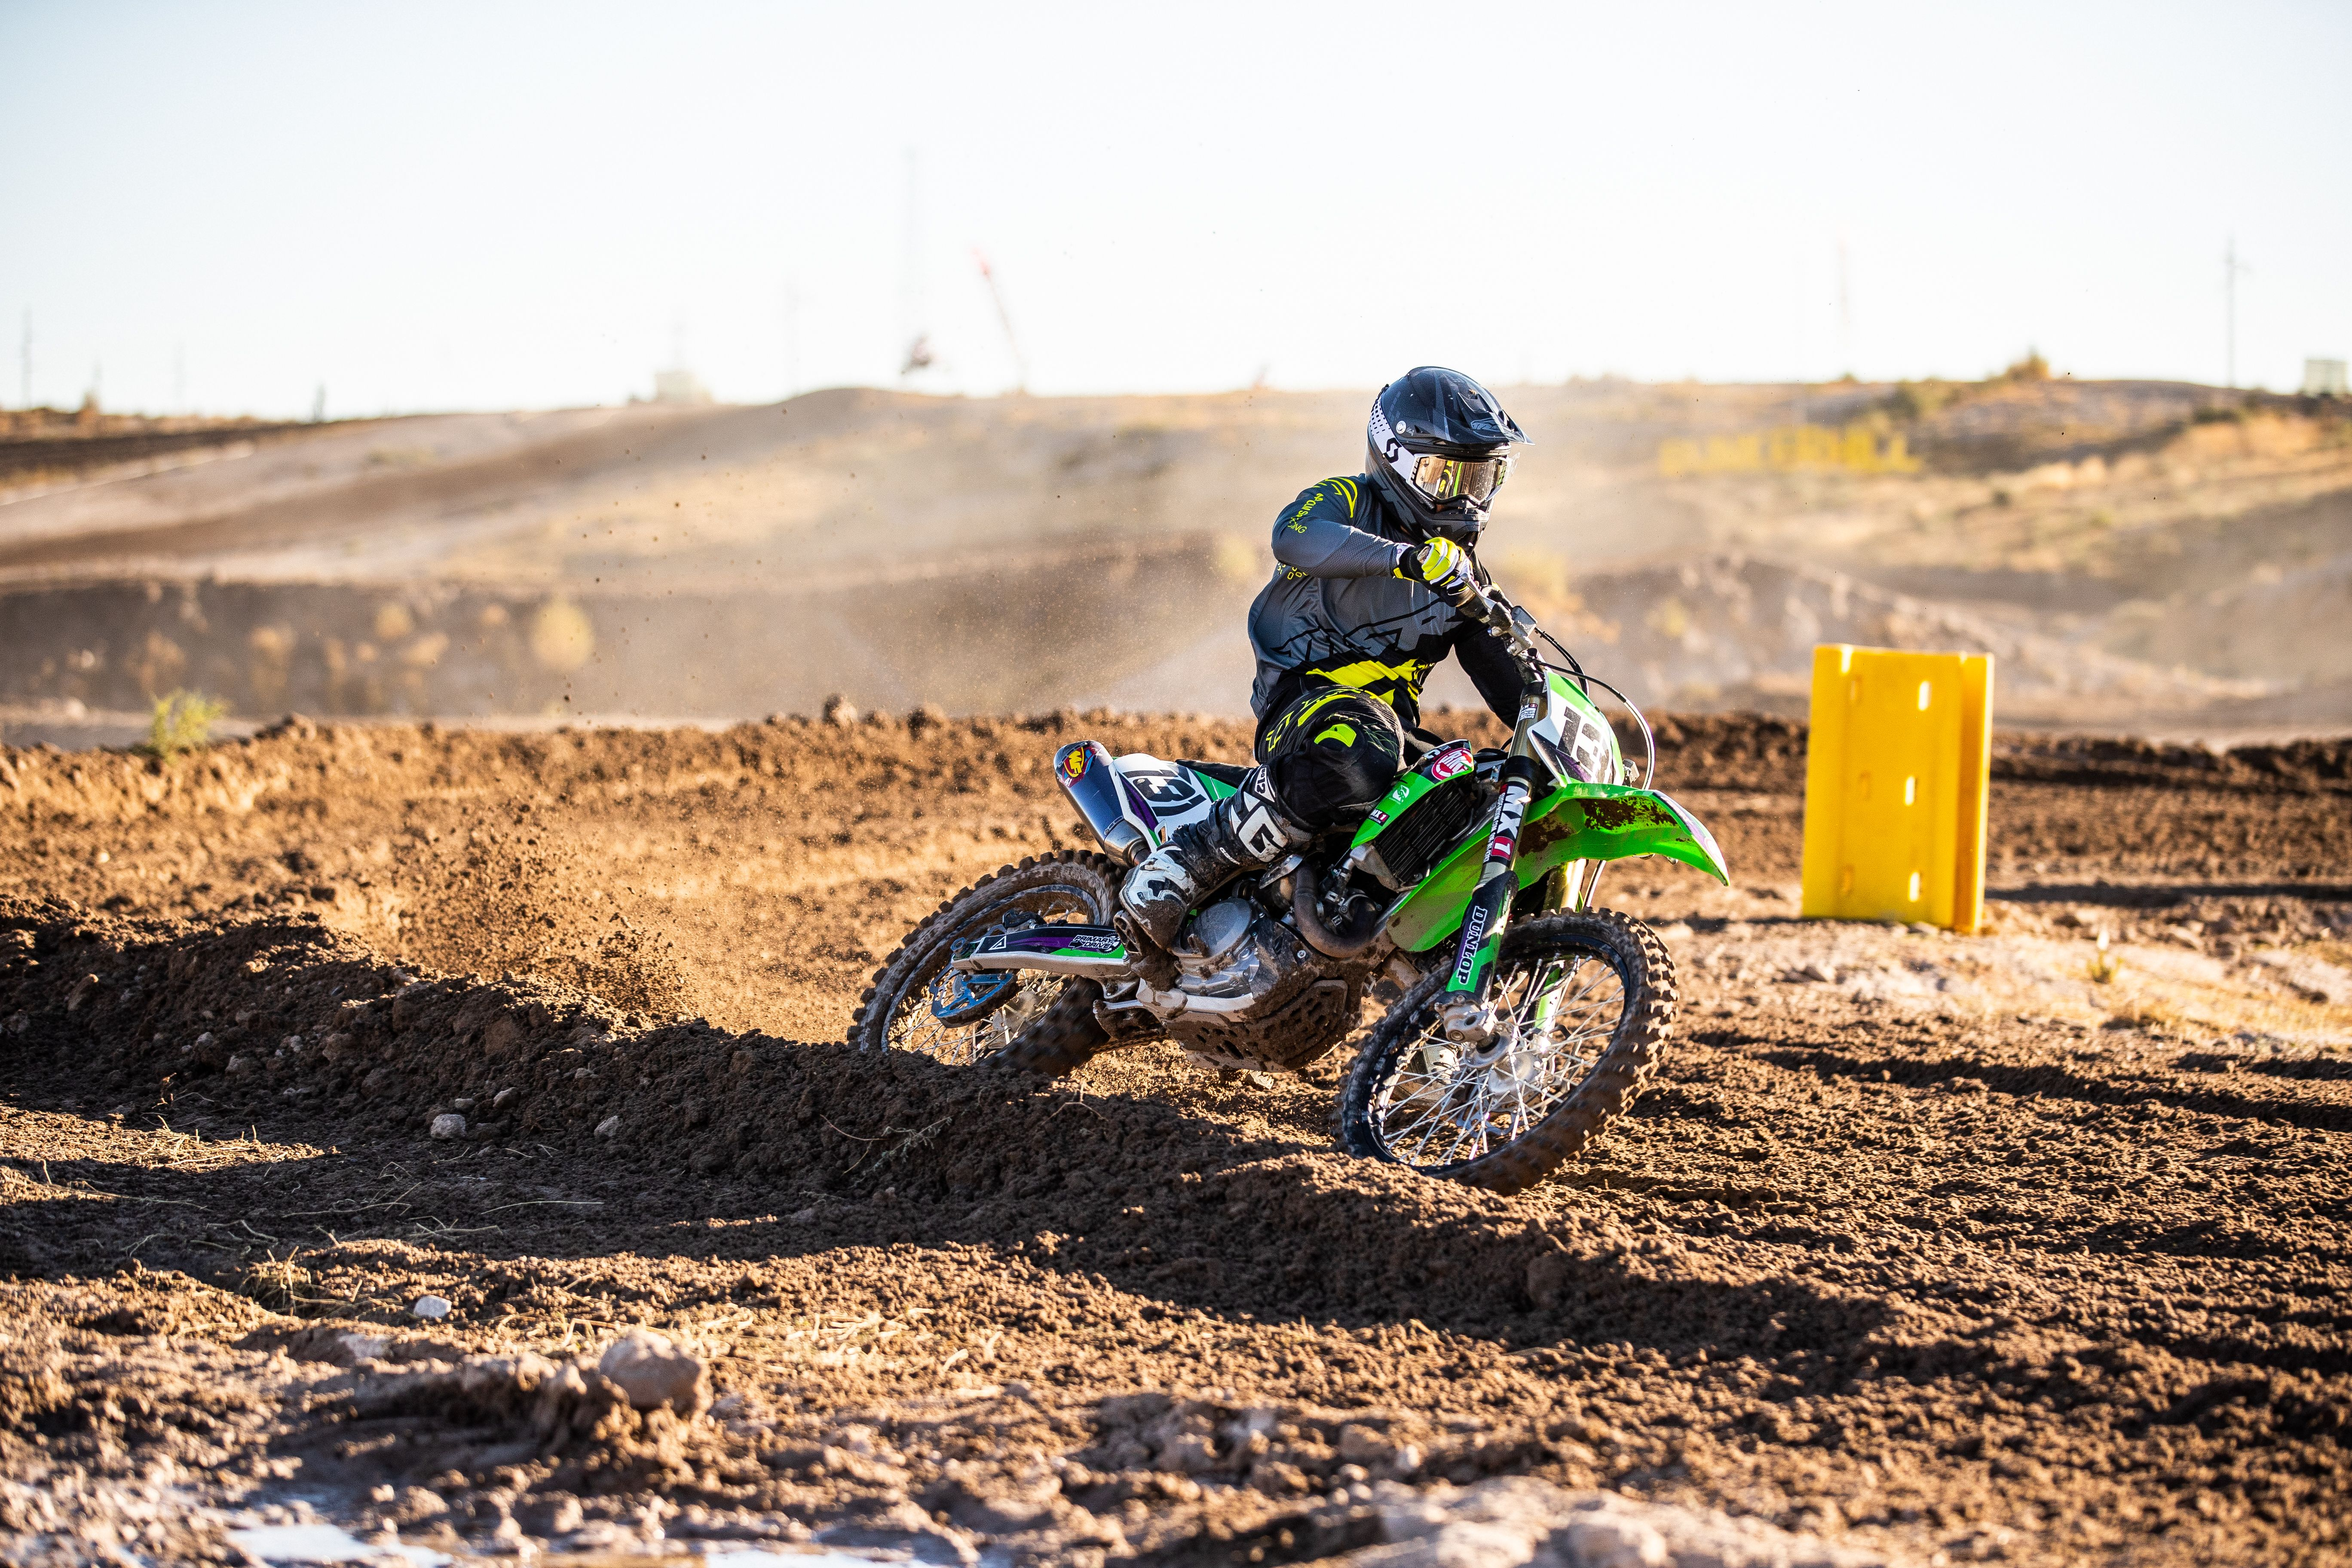 Chase On His 2019 Kawasaki Kx450 Visit Our Youtube Channel To See